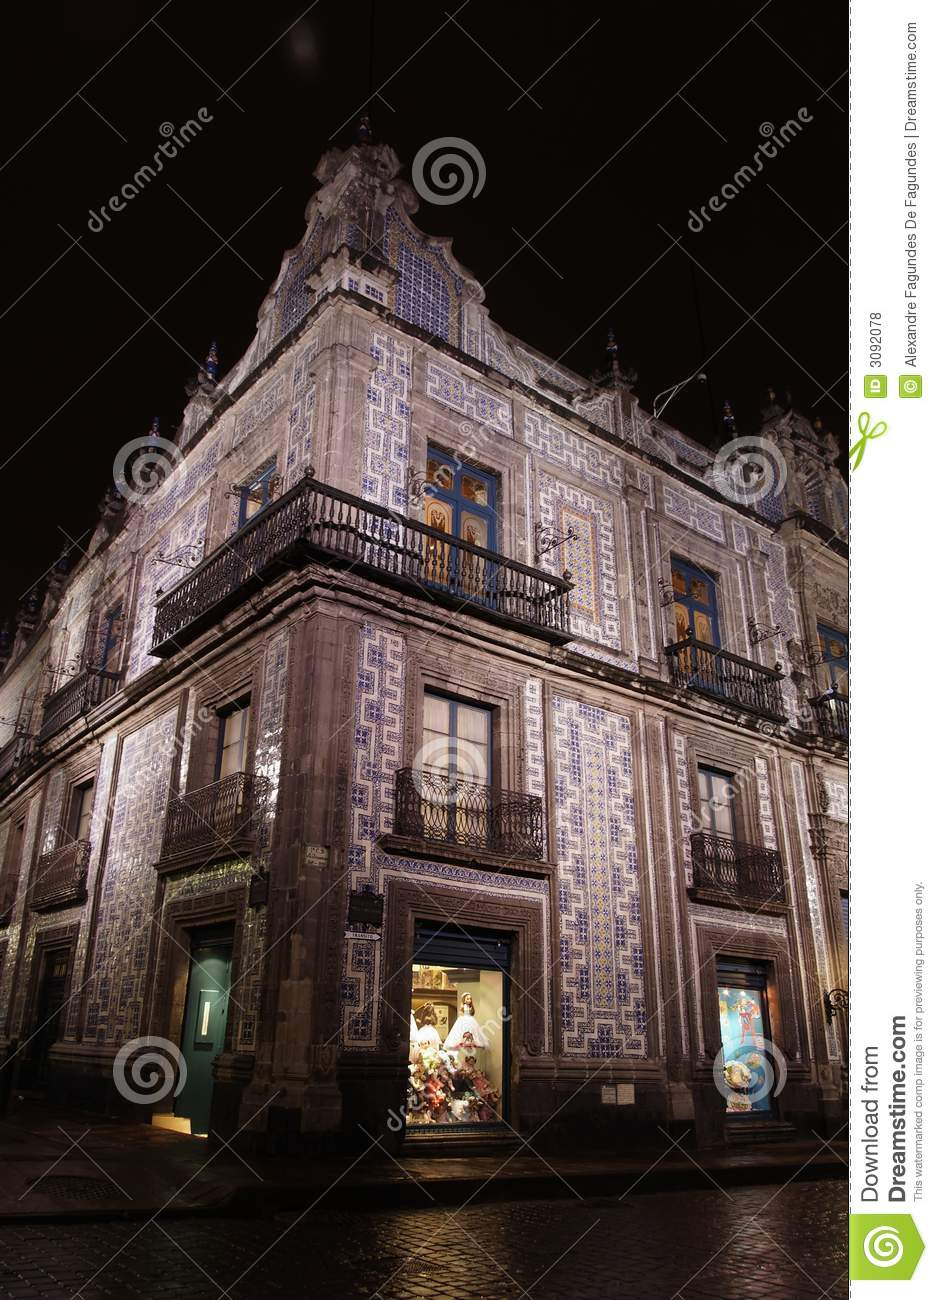 Casa de los azulejos mexico city royalty free stock photos for Rusticae casa de los azulejos